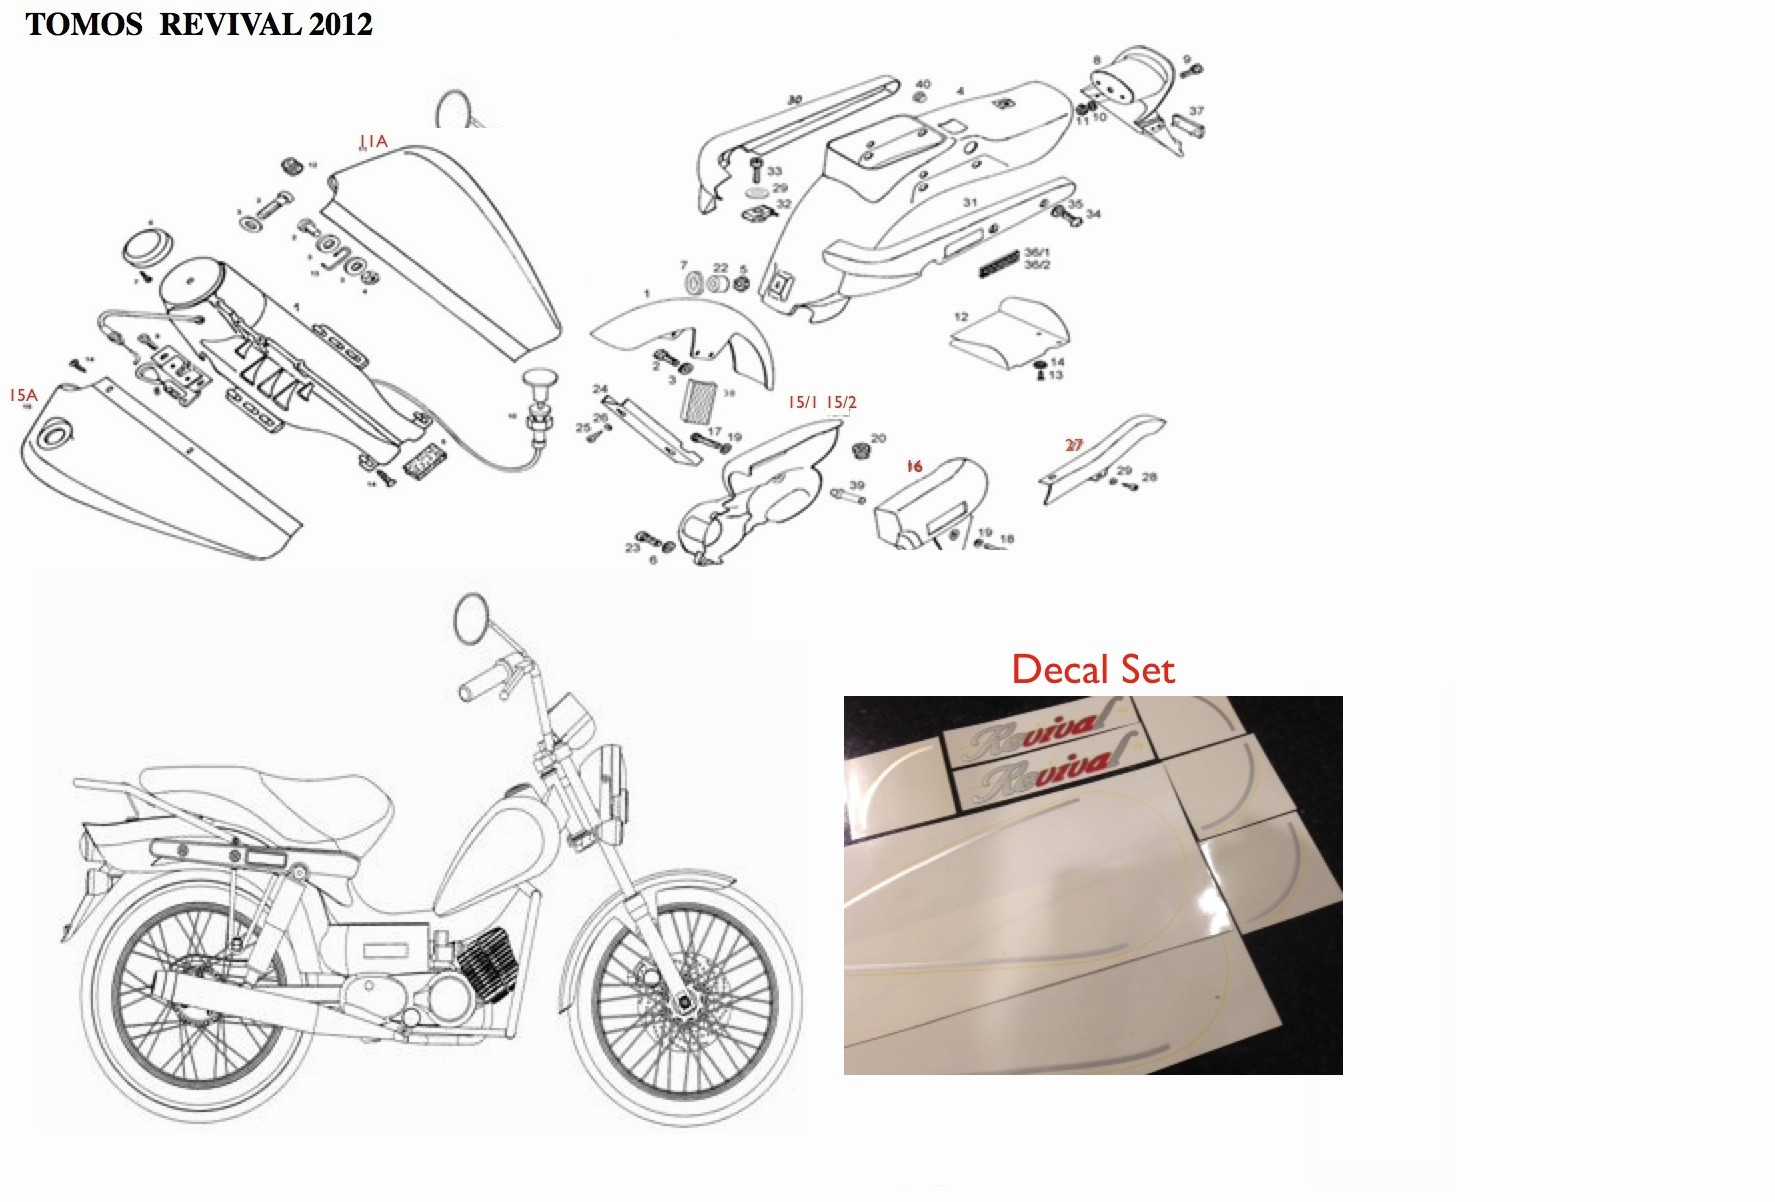 Tomos A55 Engine Diagram tomos Fairings Side Covers & Hardware 8 Subcategories Of Tomos A55 Engine Diagram